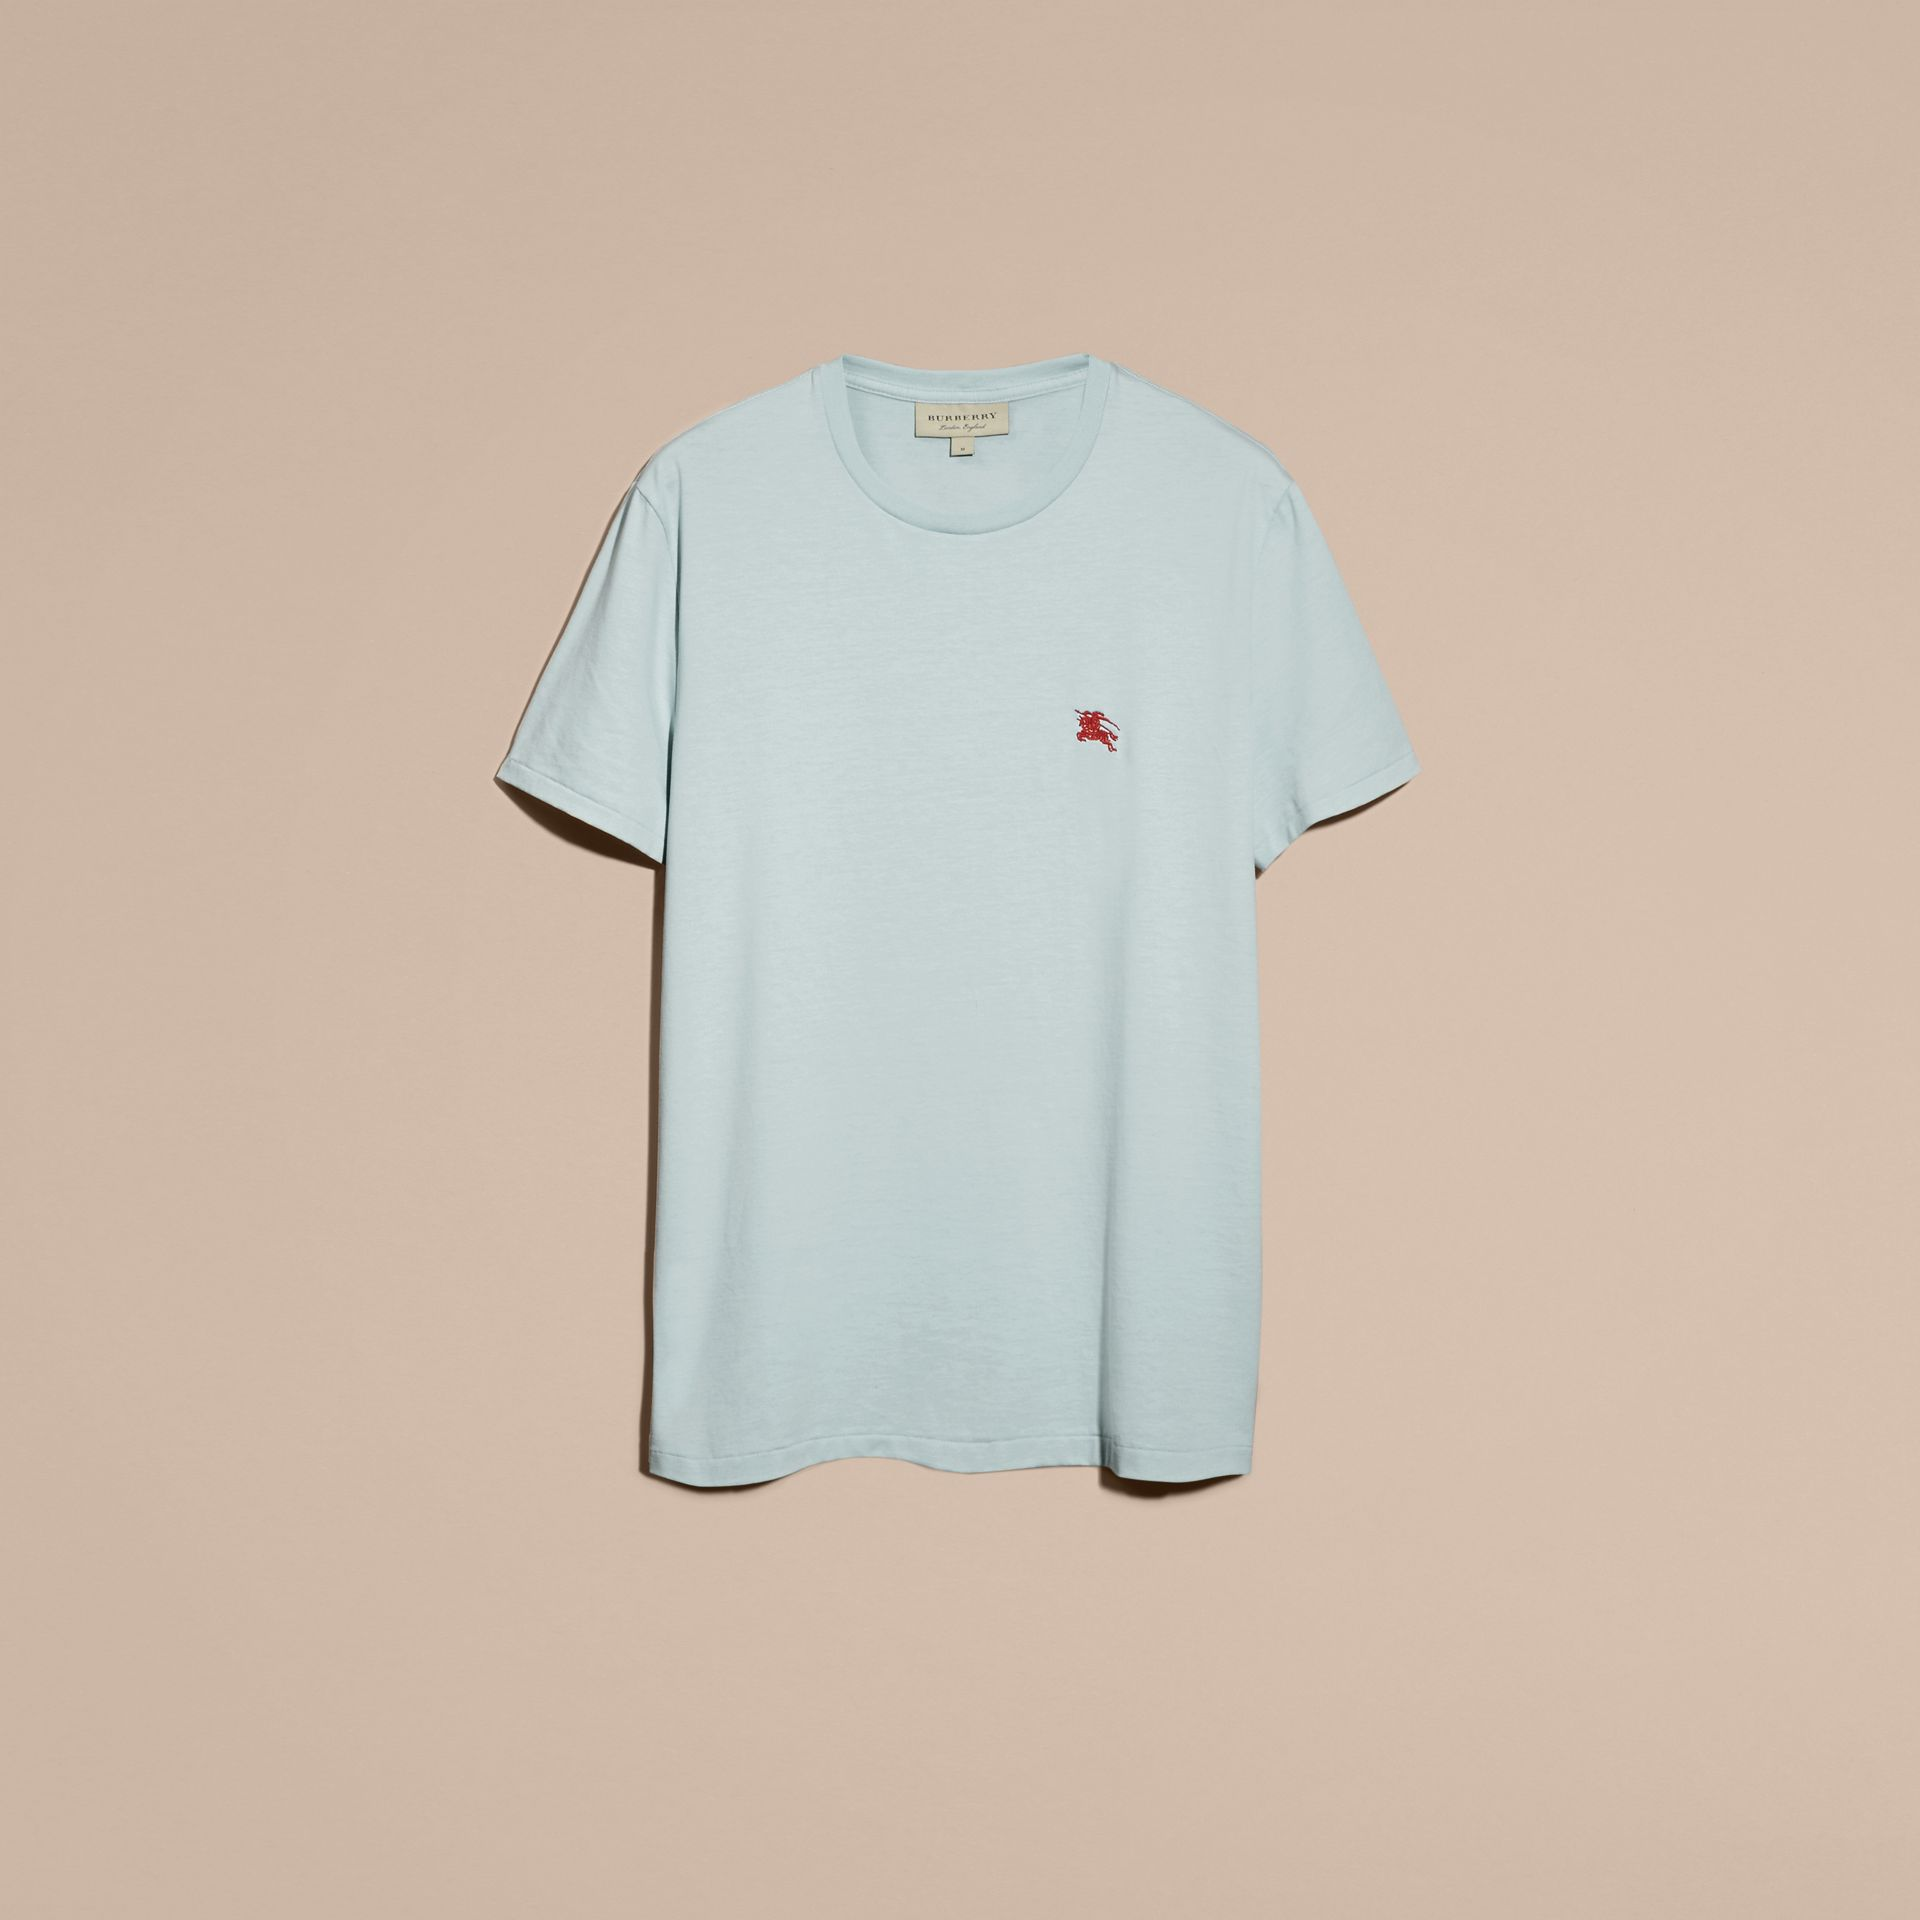 Cotton Jersey T-shirt in Pale Opal Blue - Men | Burberry - gallery image 4